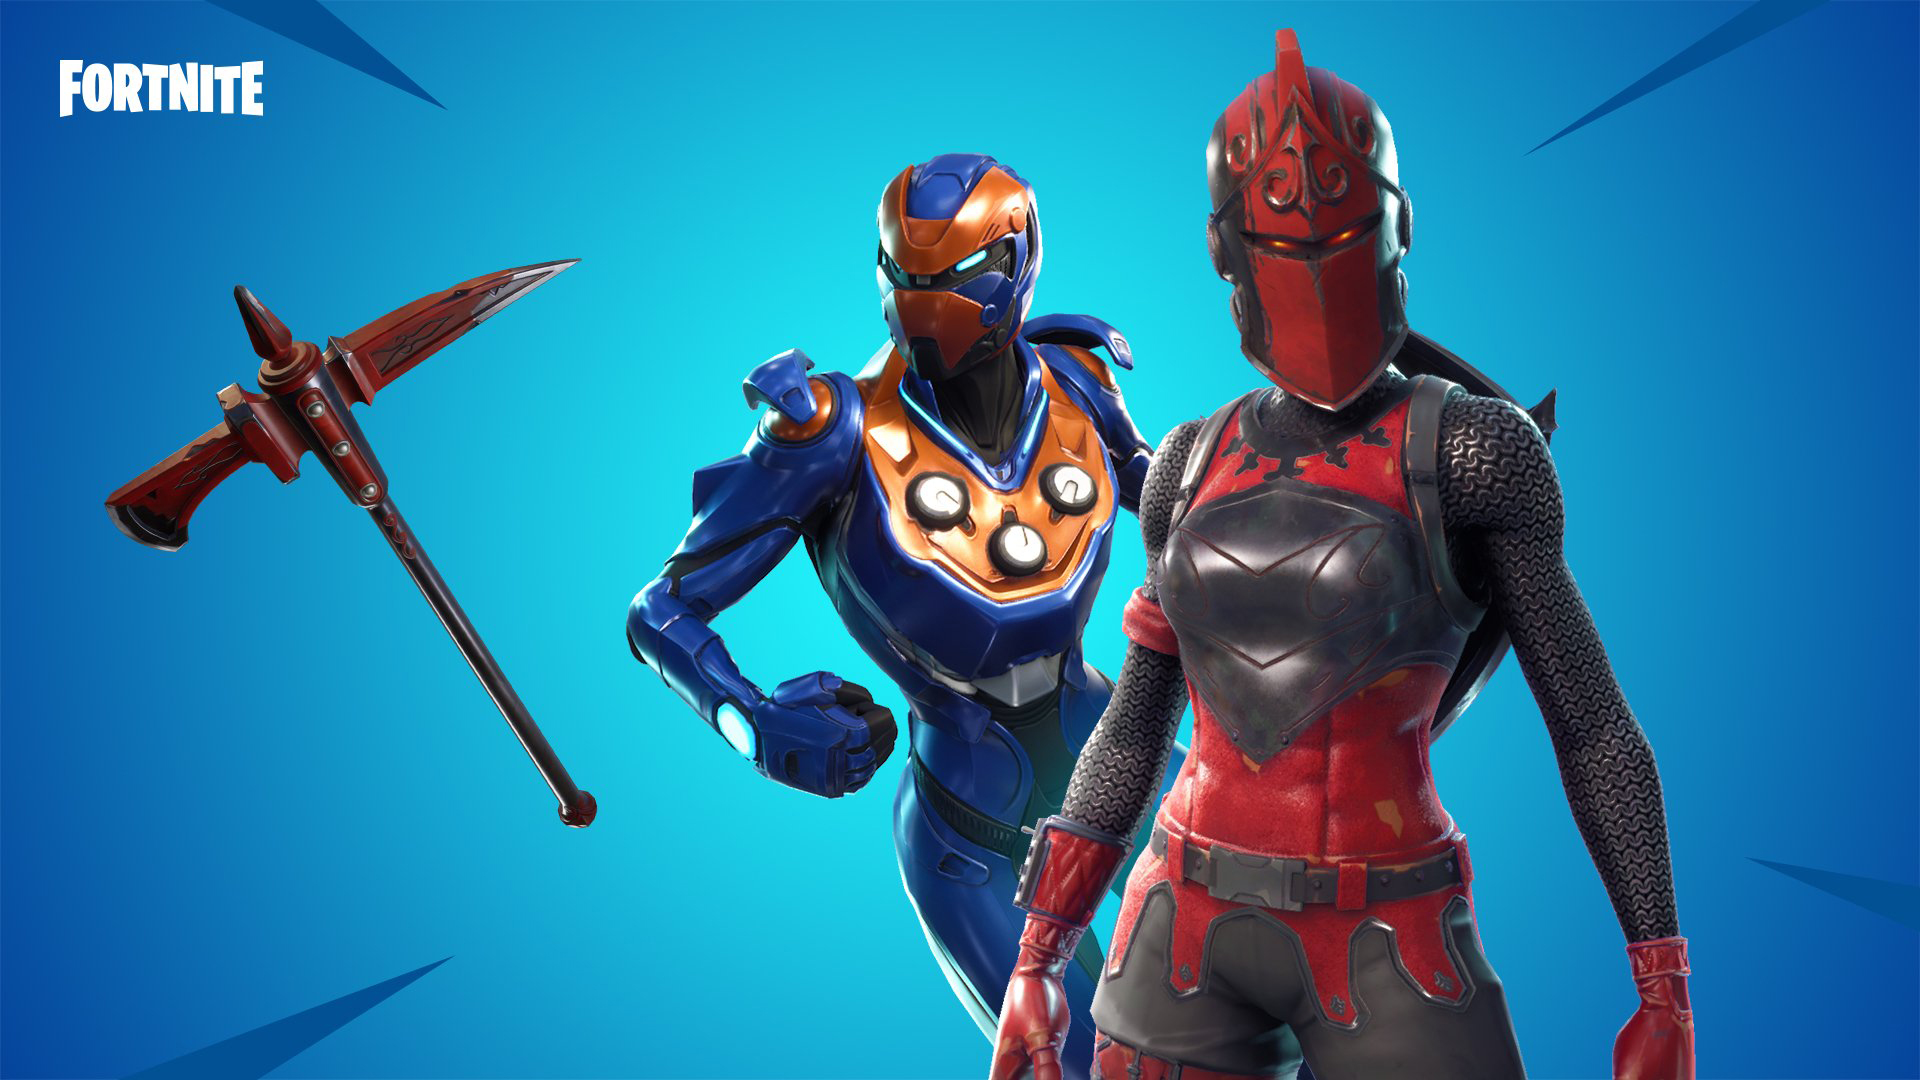 Unmasked Red Knight Fortnite Wallpaper